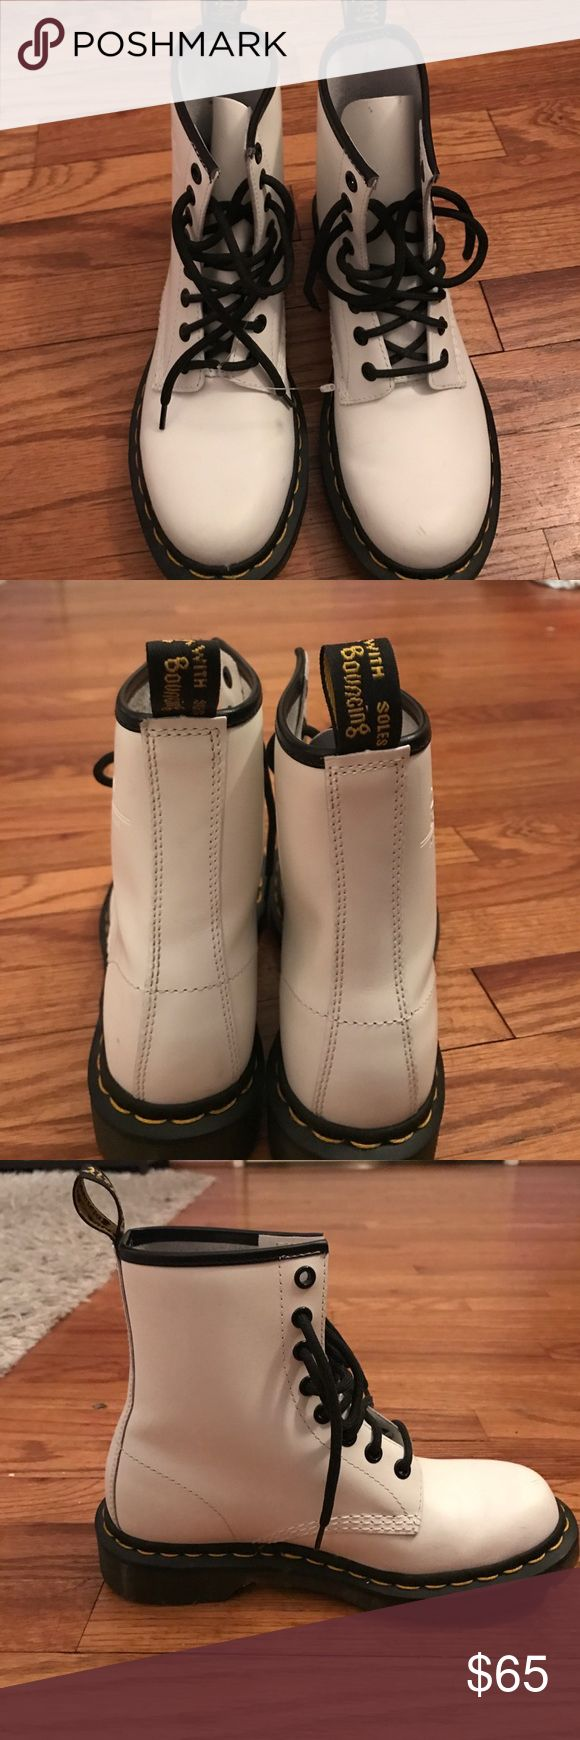 Selling this WHITE DOC MARTENS on Poshmark! My username is: rileyc21. #shopmycloset #poshmark #fashion #shopping #style #forsale #Dr. Martens #Shoes